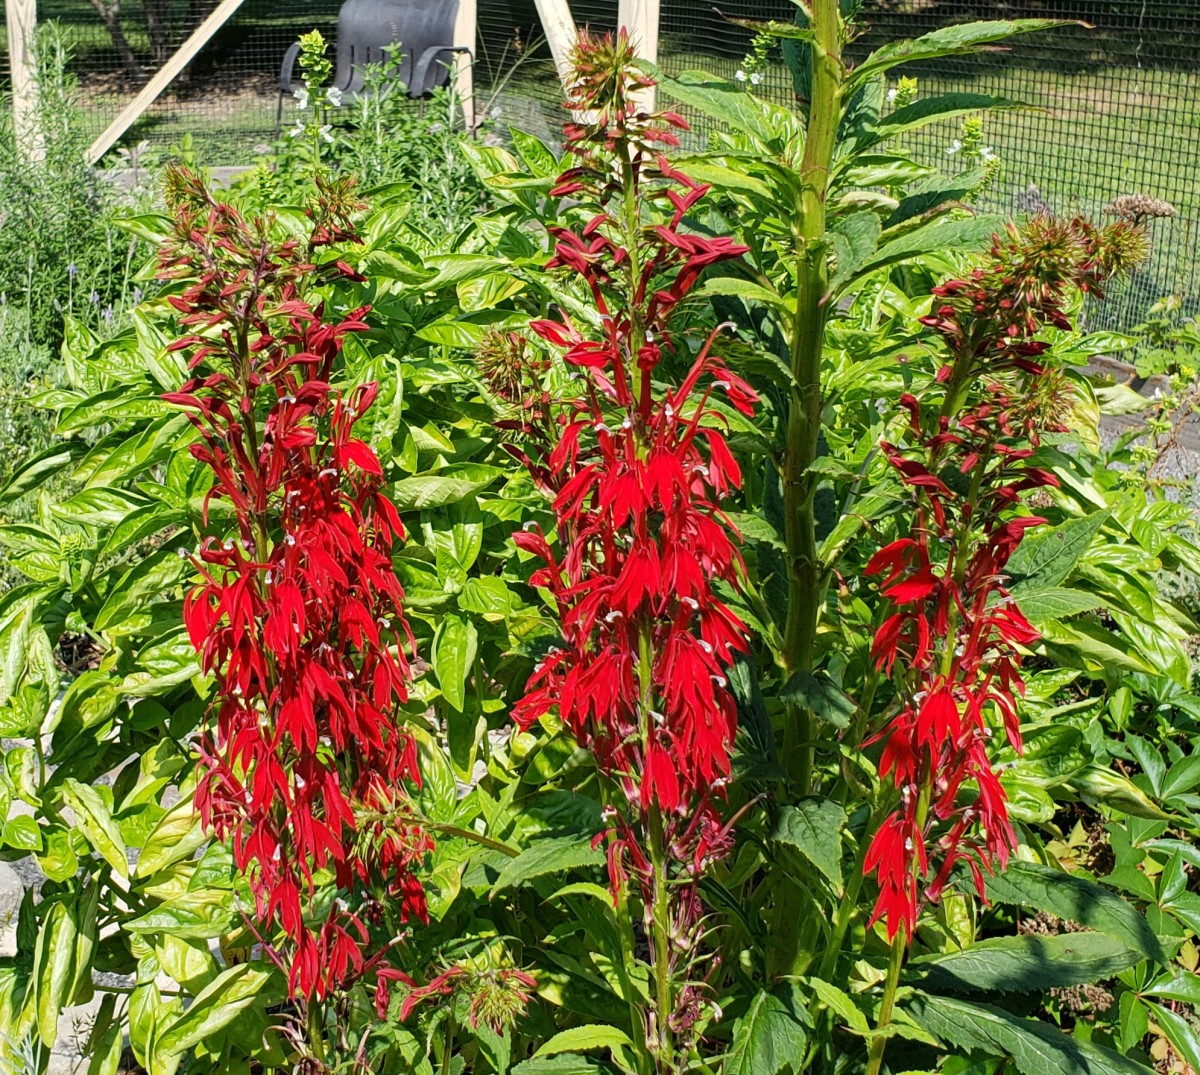 Cardinal flowers growing in a garden.